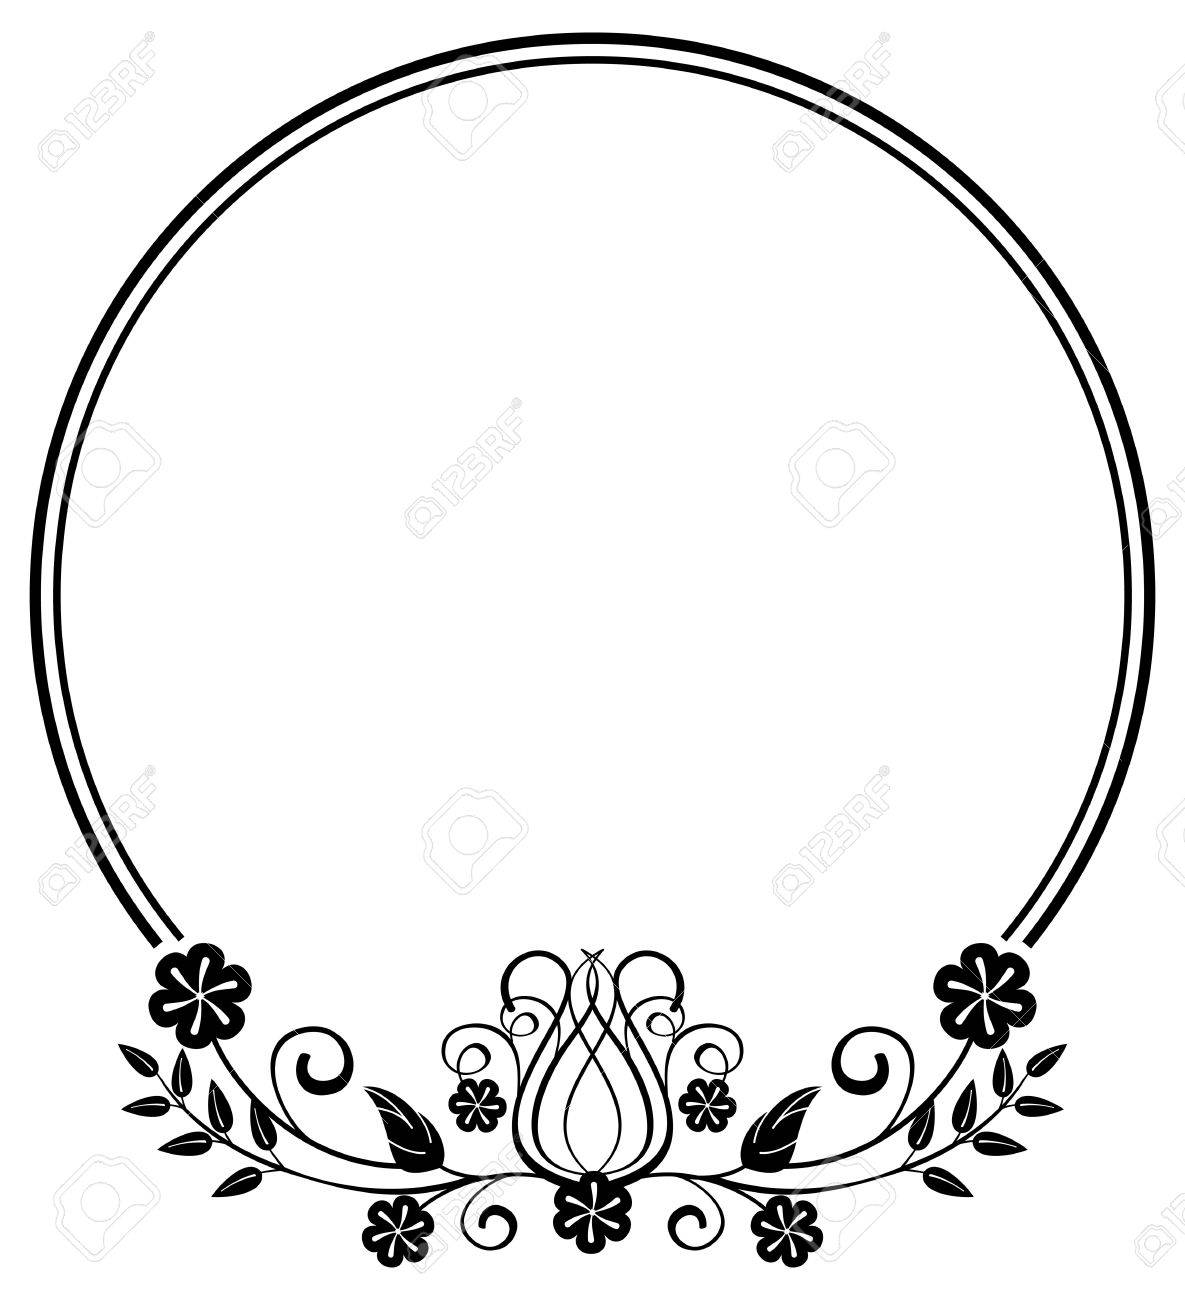 black and white round frame with floral silhouettes copy space rh 123rf com  floral clipart designs